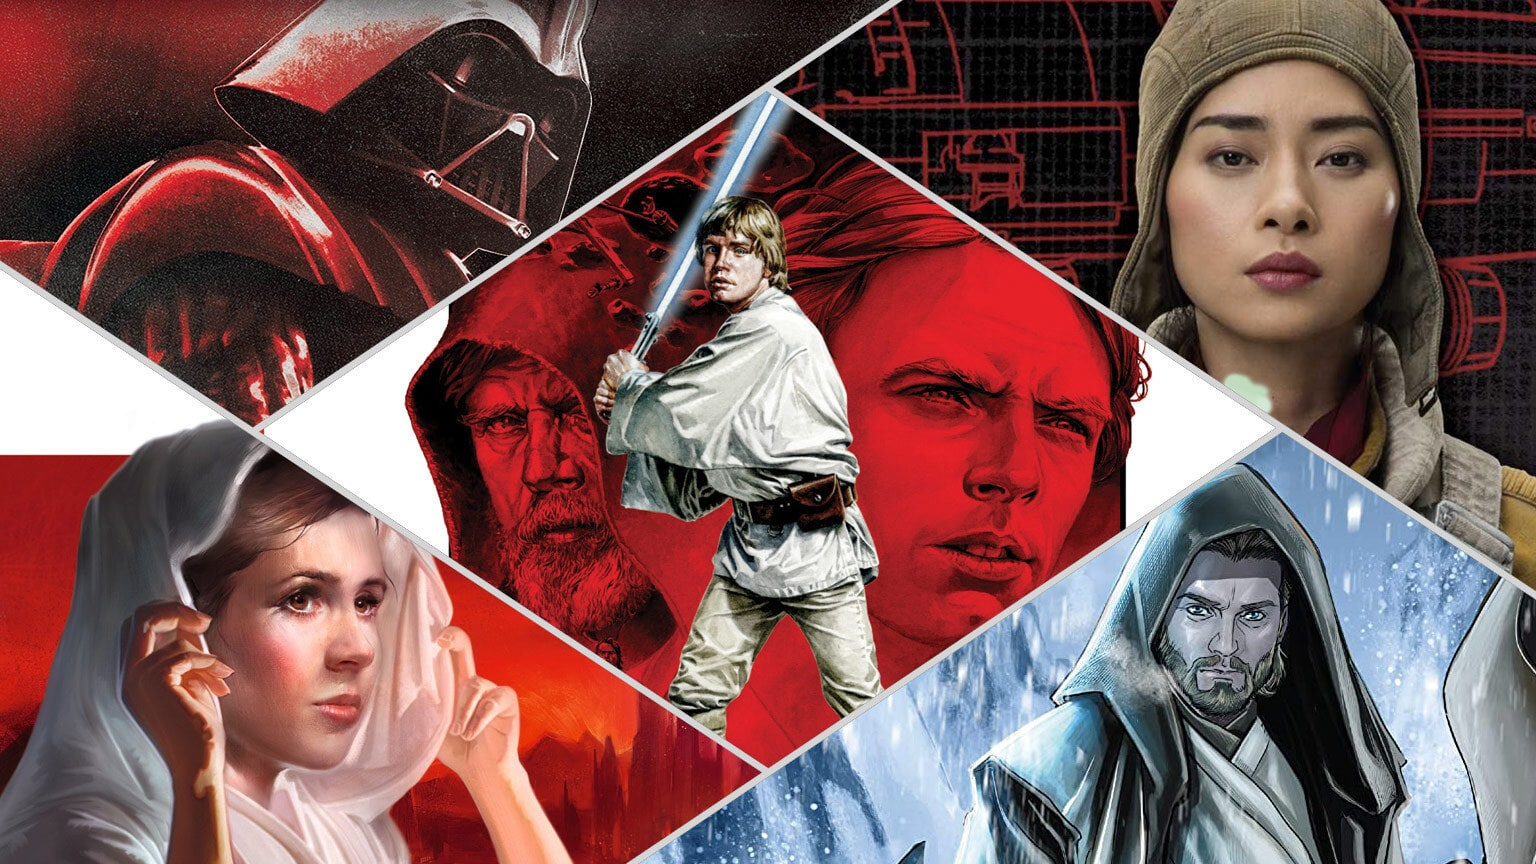 Looking for a Star Wars Summer Reading List? Found One, You Have!